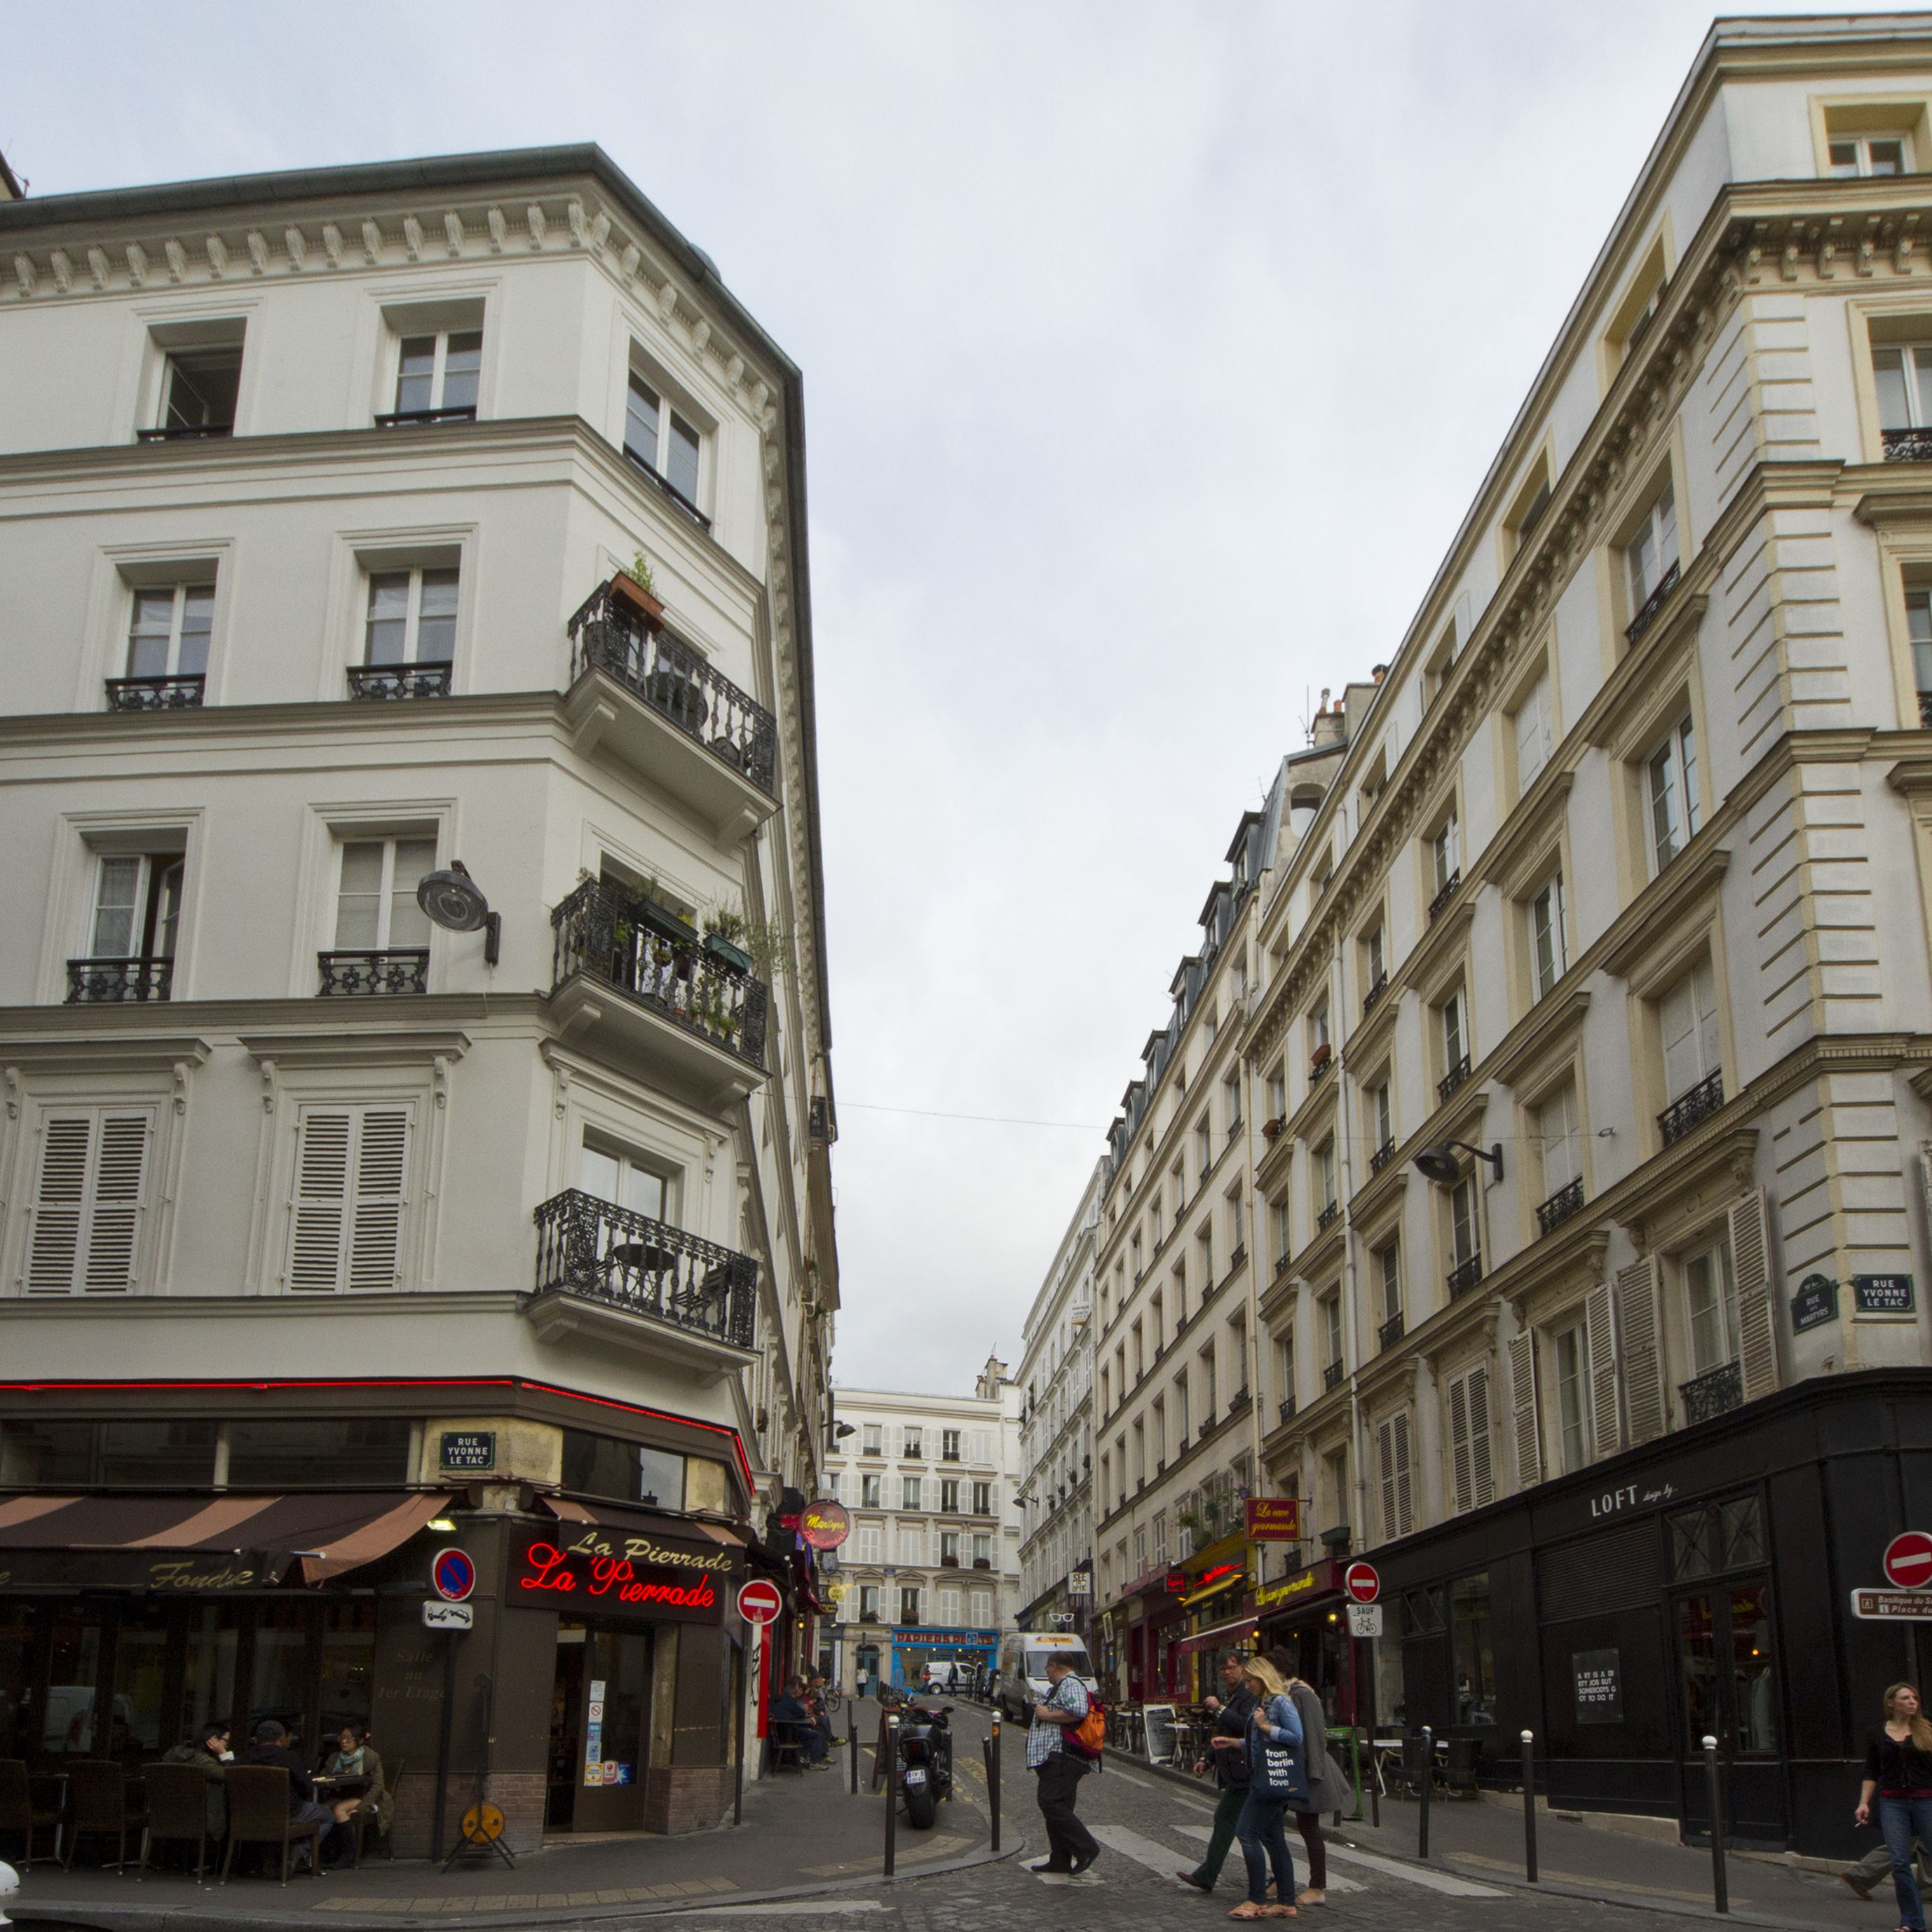 The Rue des Martyrs in Paris: A Complete Guide